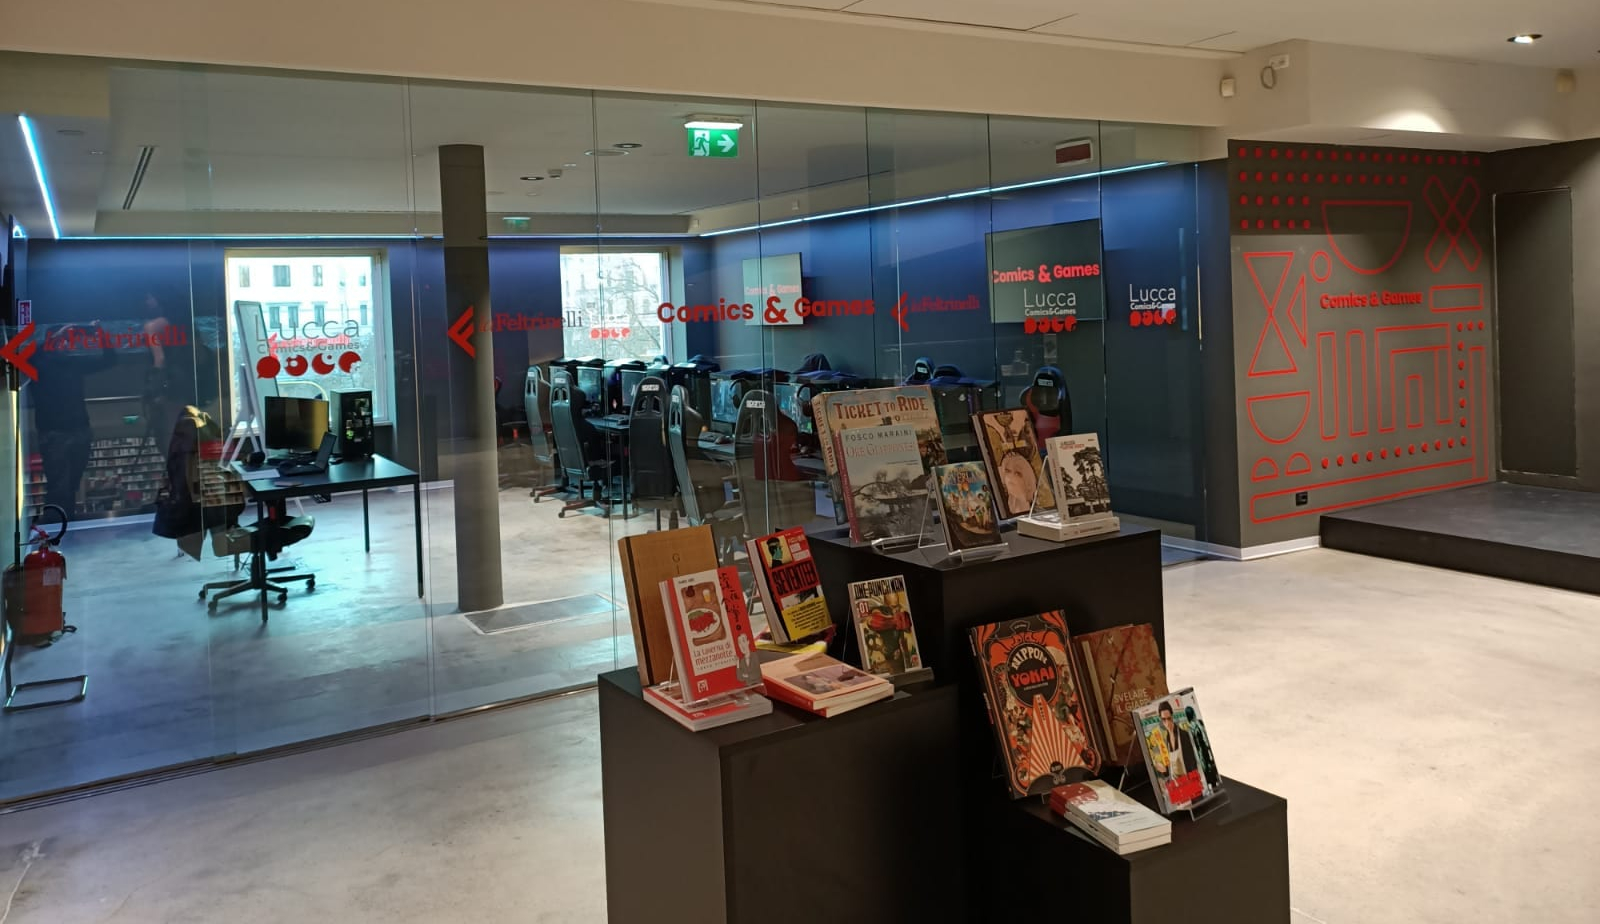 Area Feltrinelli Comics & Games